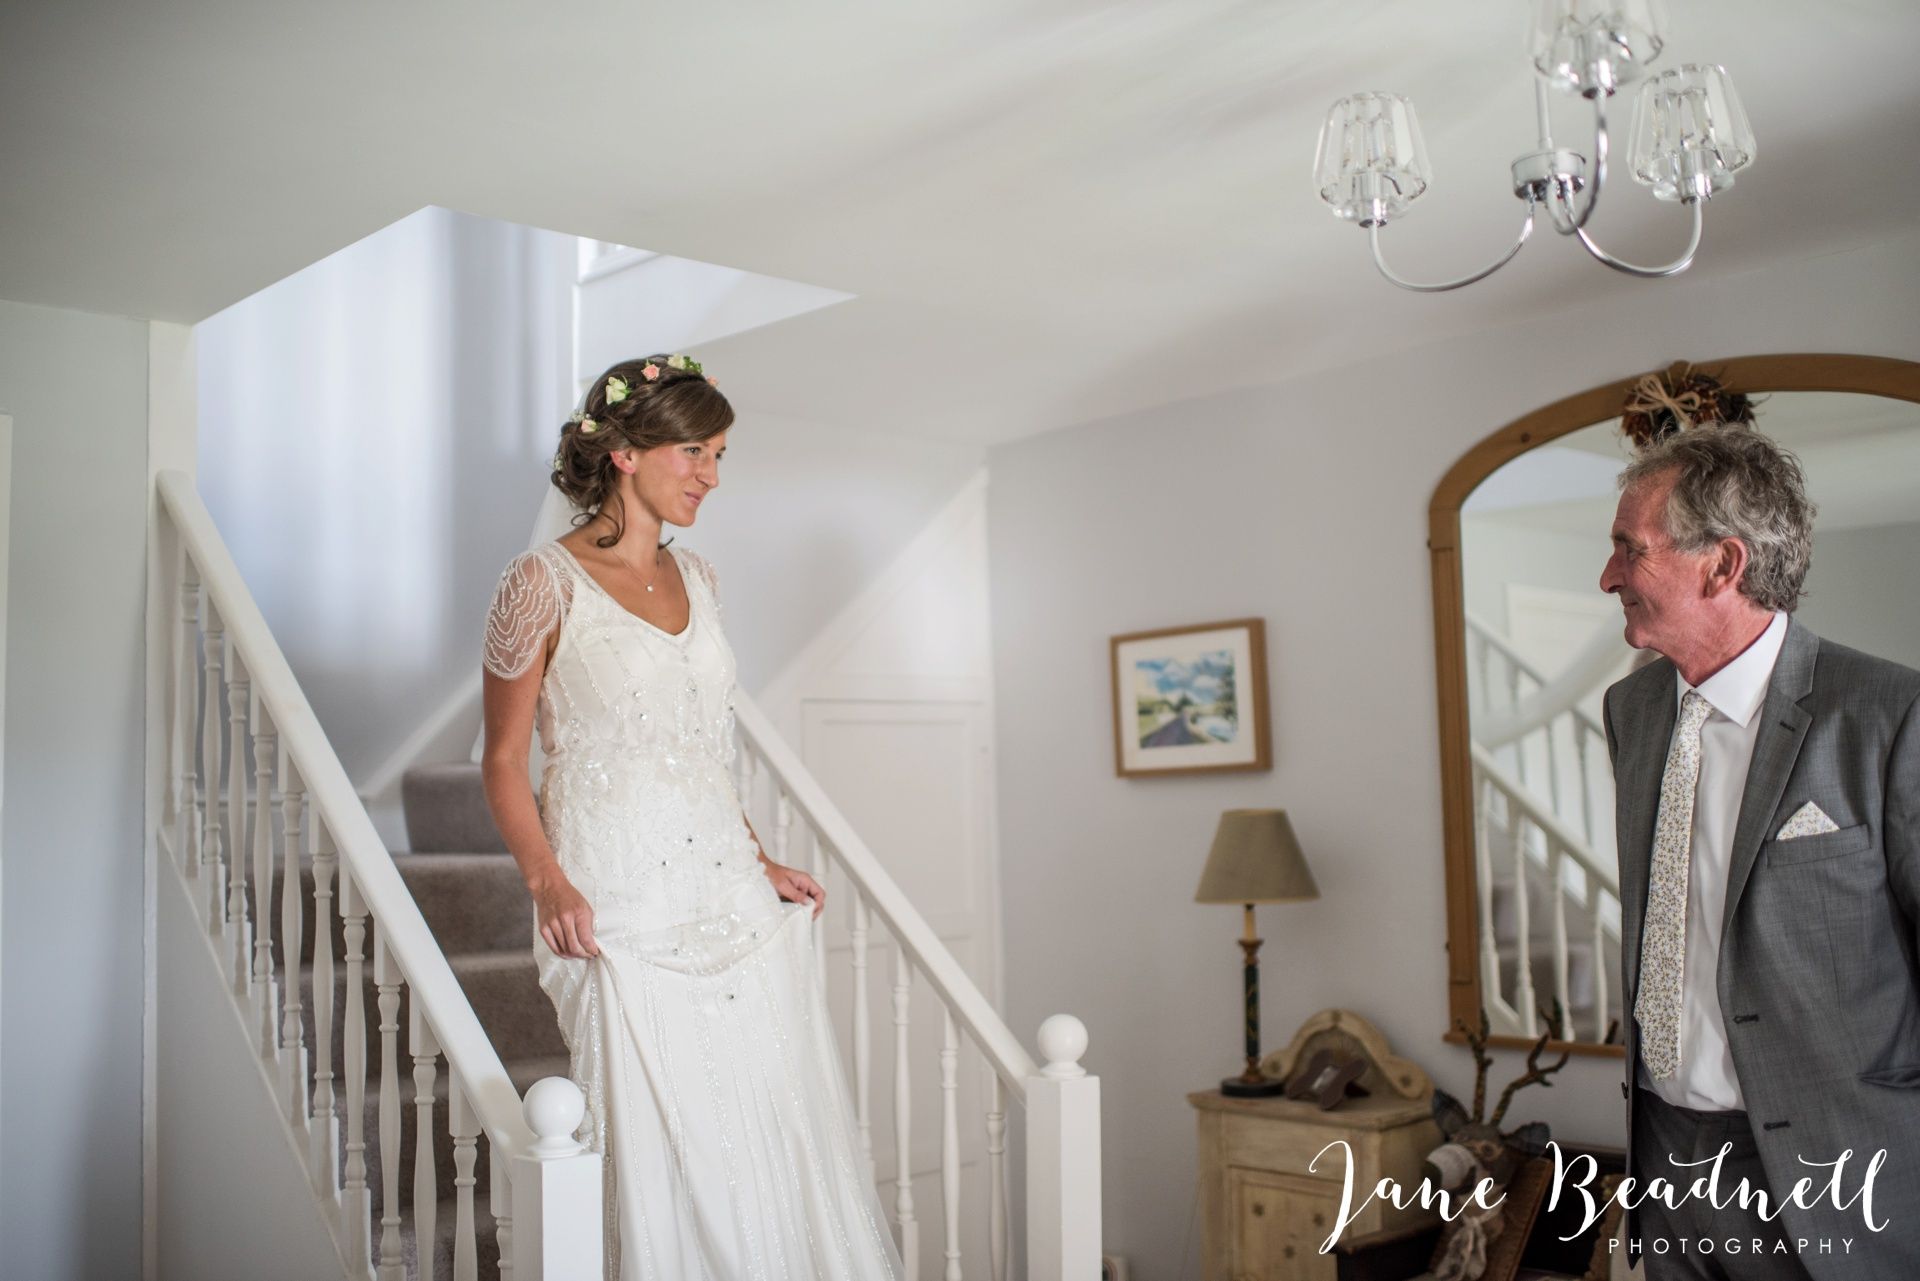 Jane Beadnell fine art wedding photographer Leeds_0018